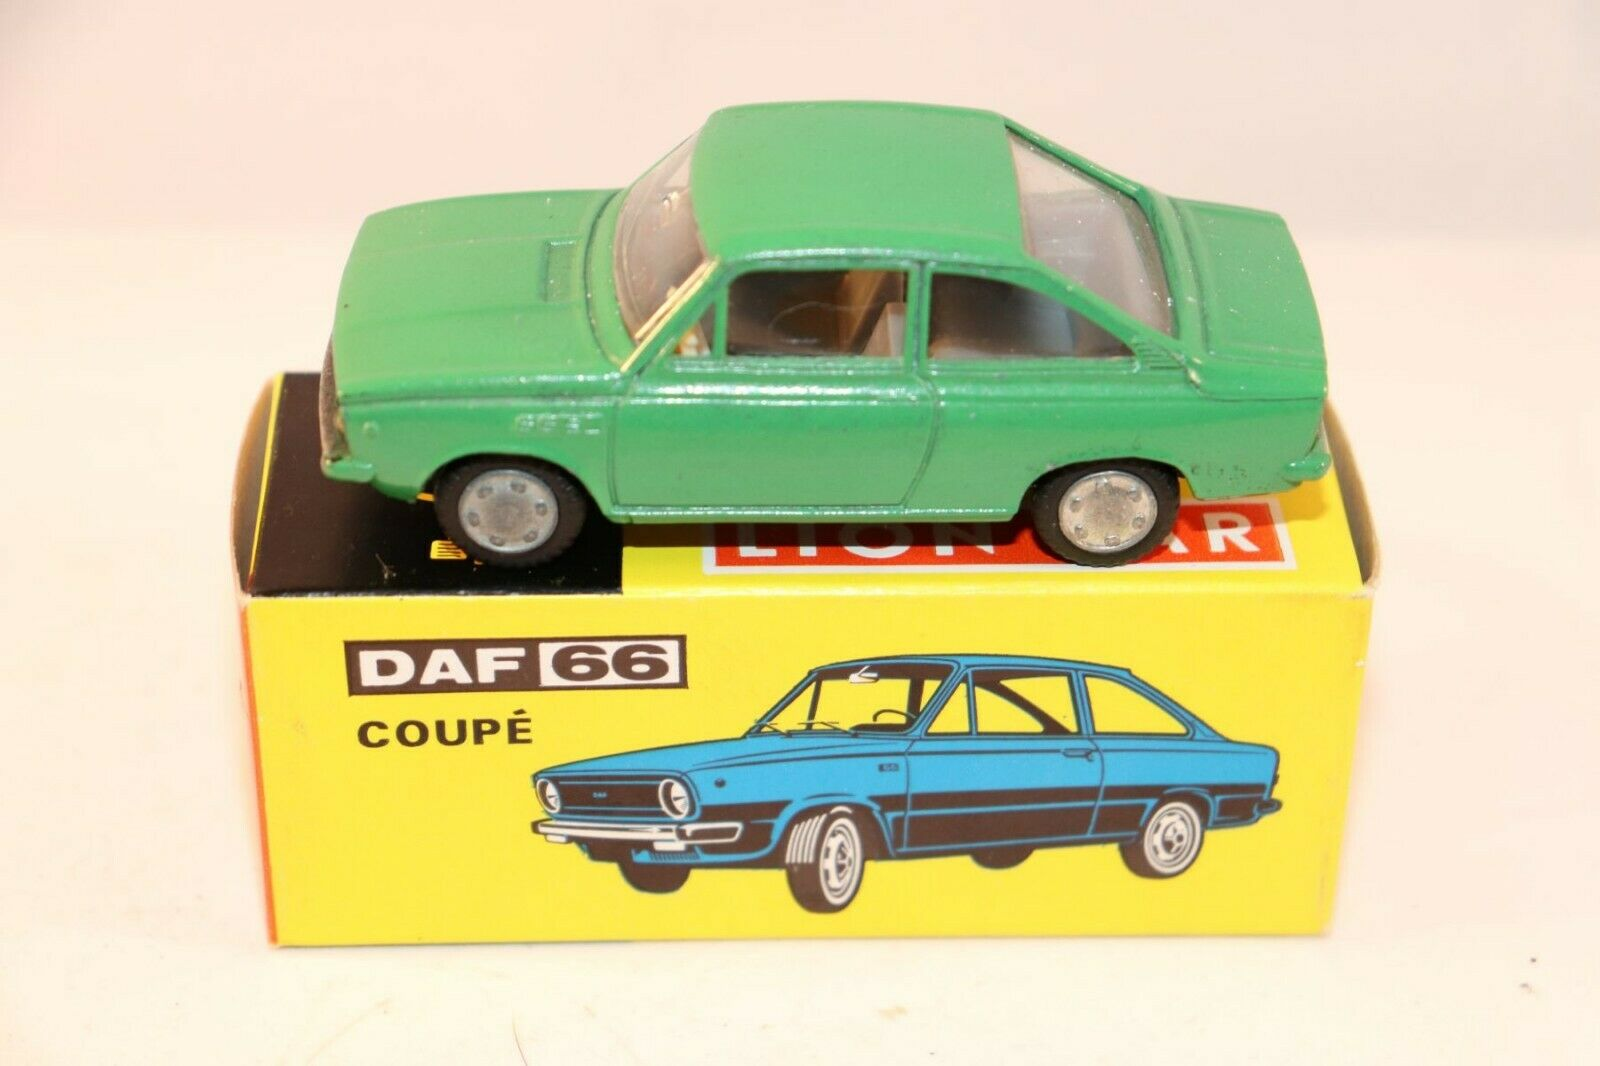 Lion Car 40 Daf Daf Daf 66 Coupe rare green very near mint in box very scarce model c0c1cb